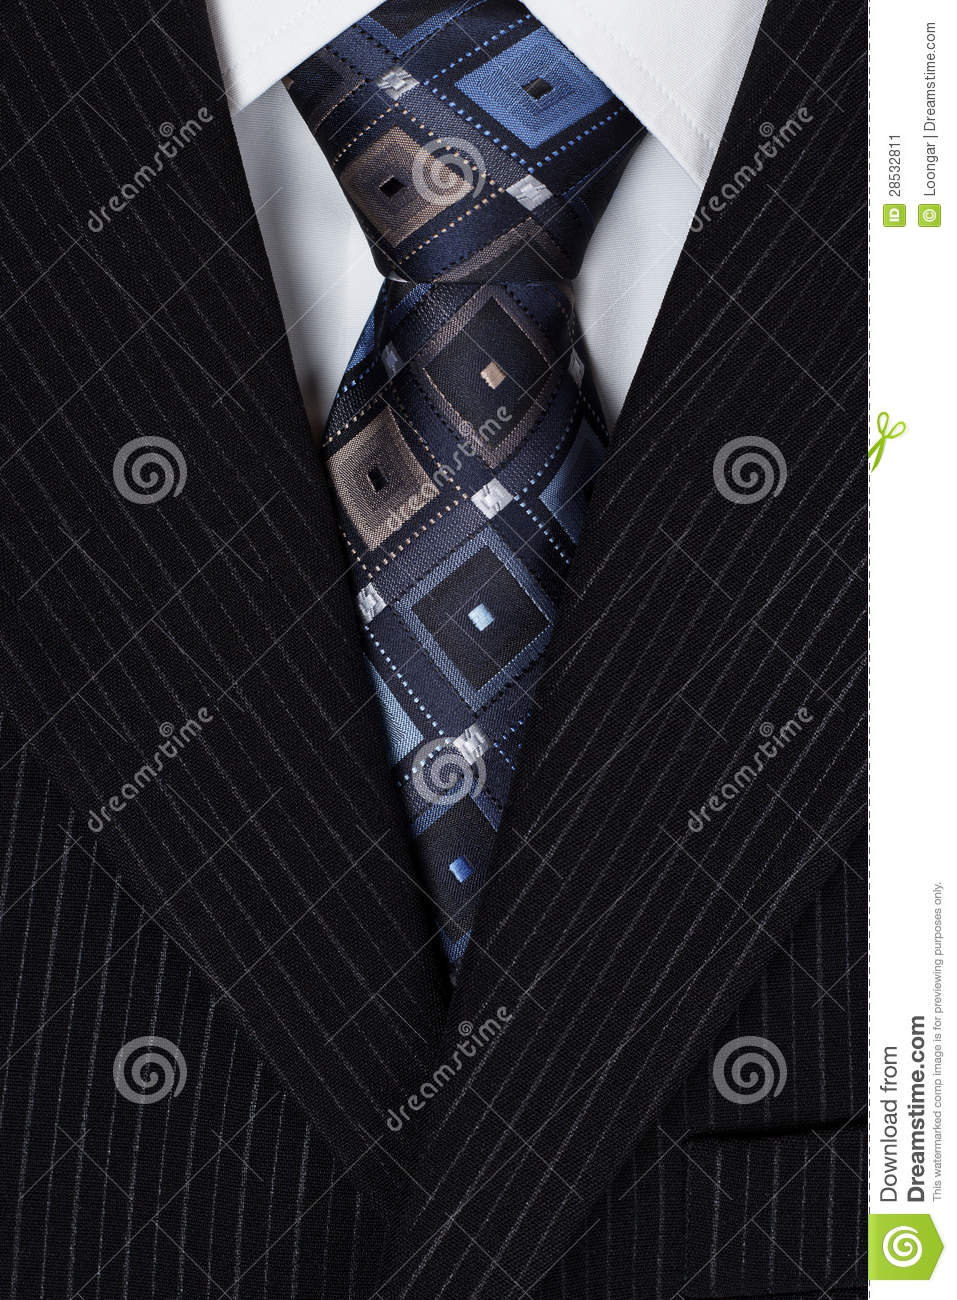 White Shirt And Blue Tie Men Suit  See My Other Works In Portfolio